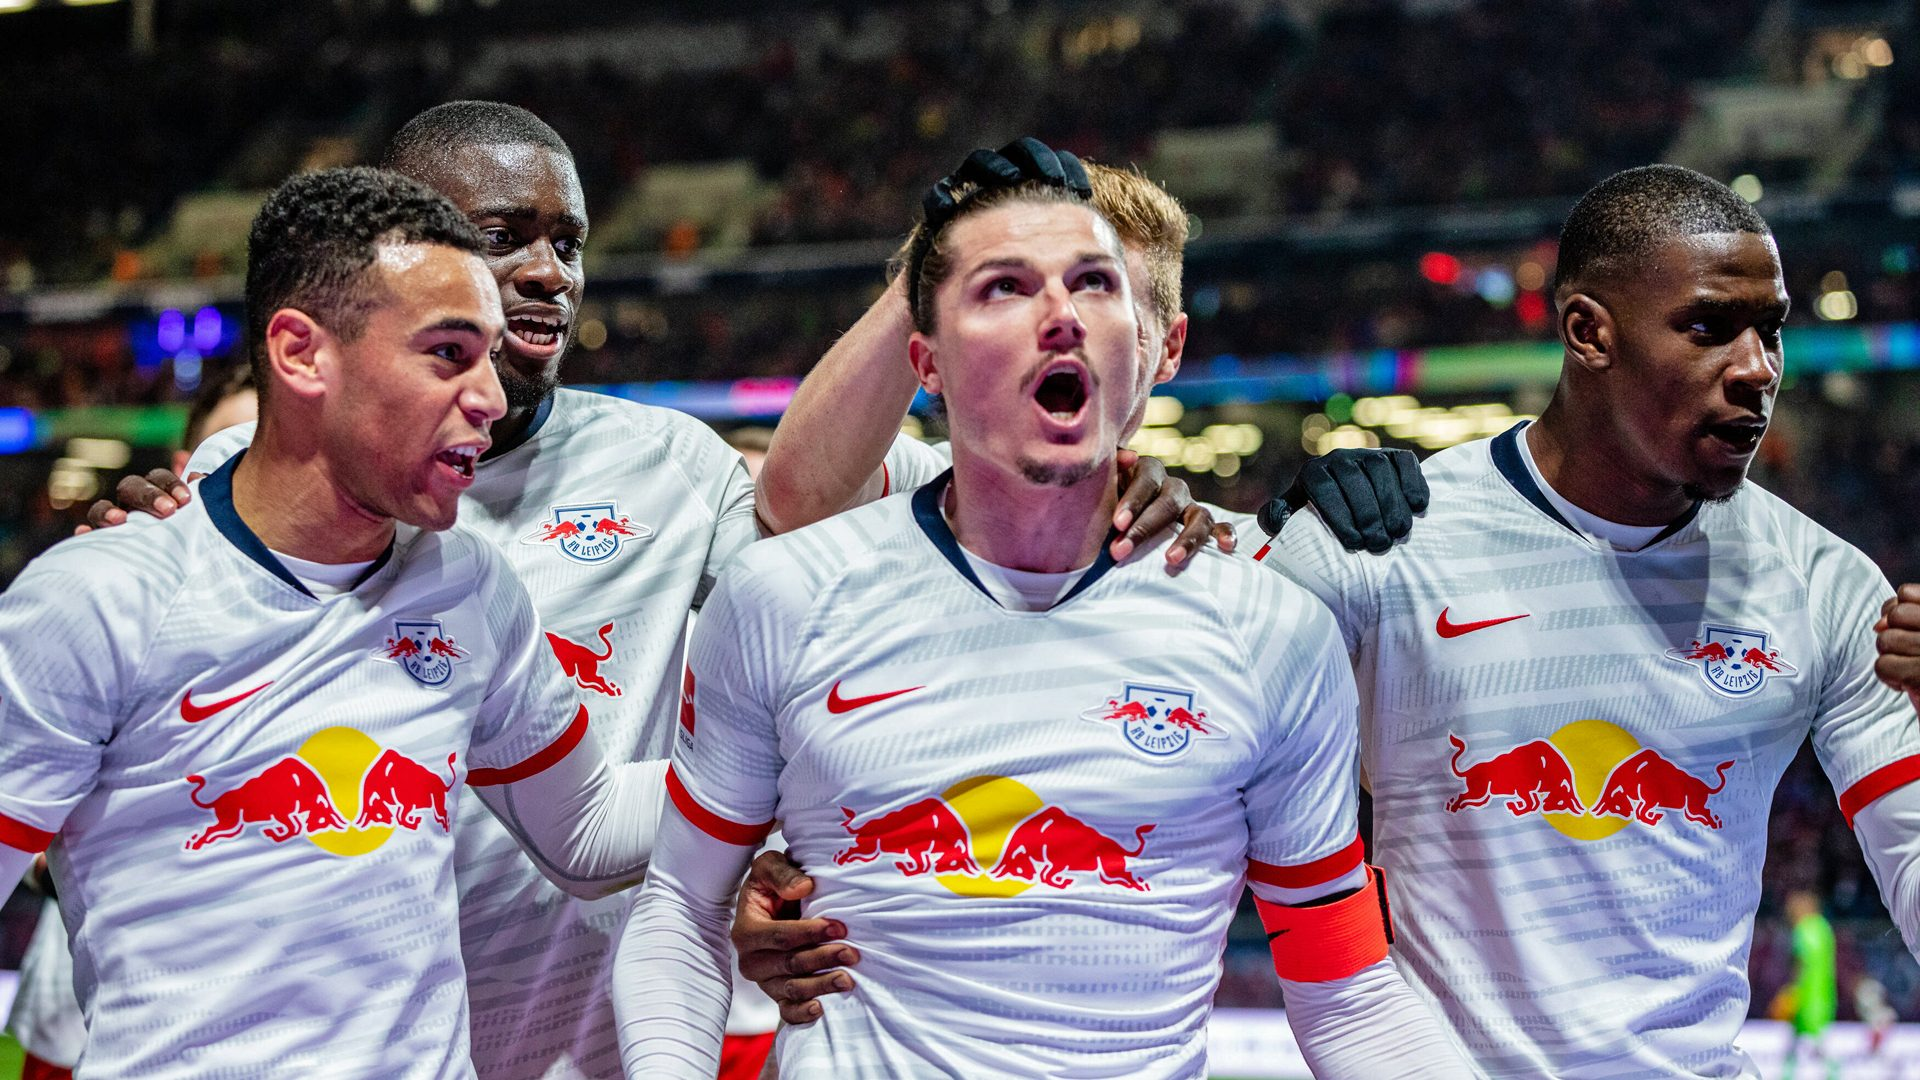 Rb Leipzig Vs Atletico Madrid Free Live Stream Tv Channel Kick Off Time And Team News For Champions League Match The Sun Celebrity Tidings